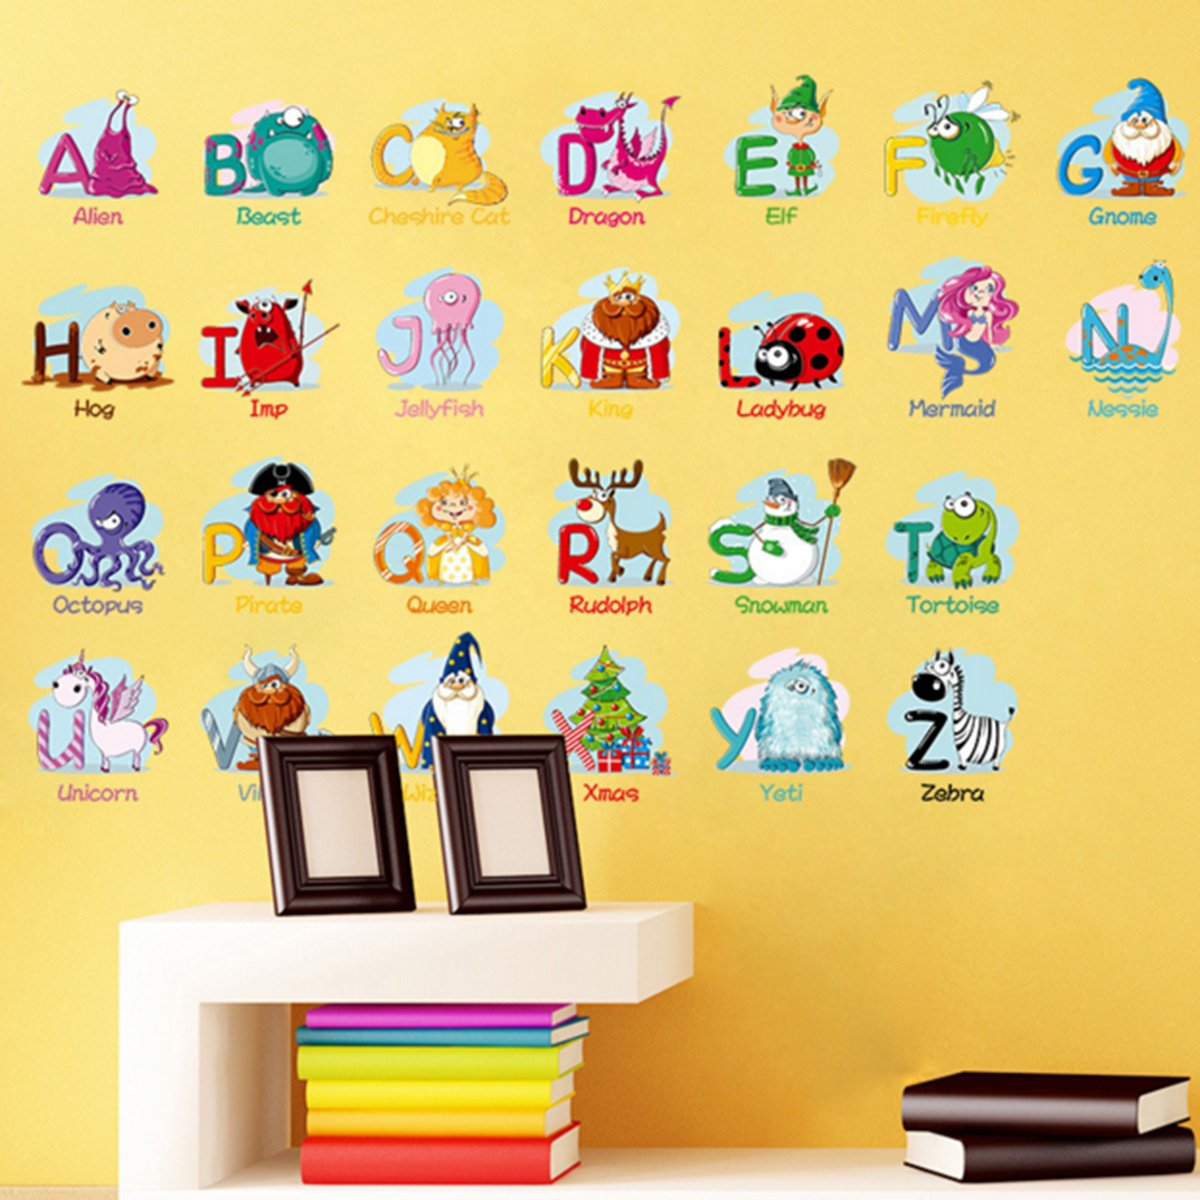 Cute Barbie Wall Decor Ideas - The Wall Art Decorations ...